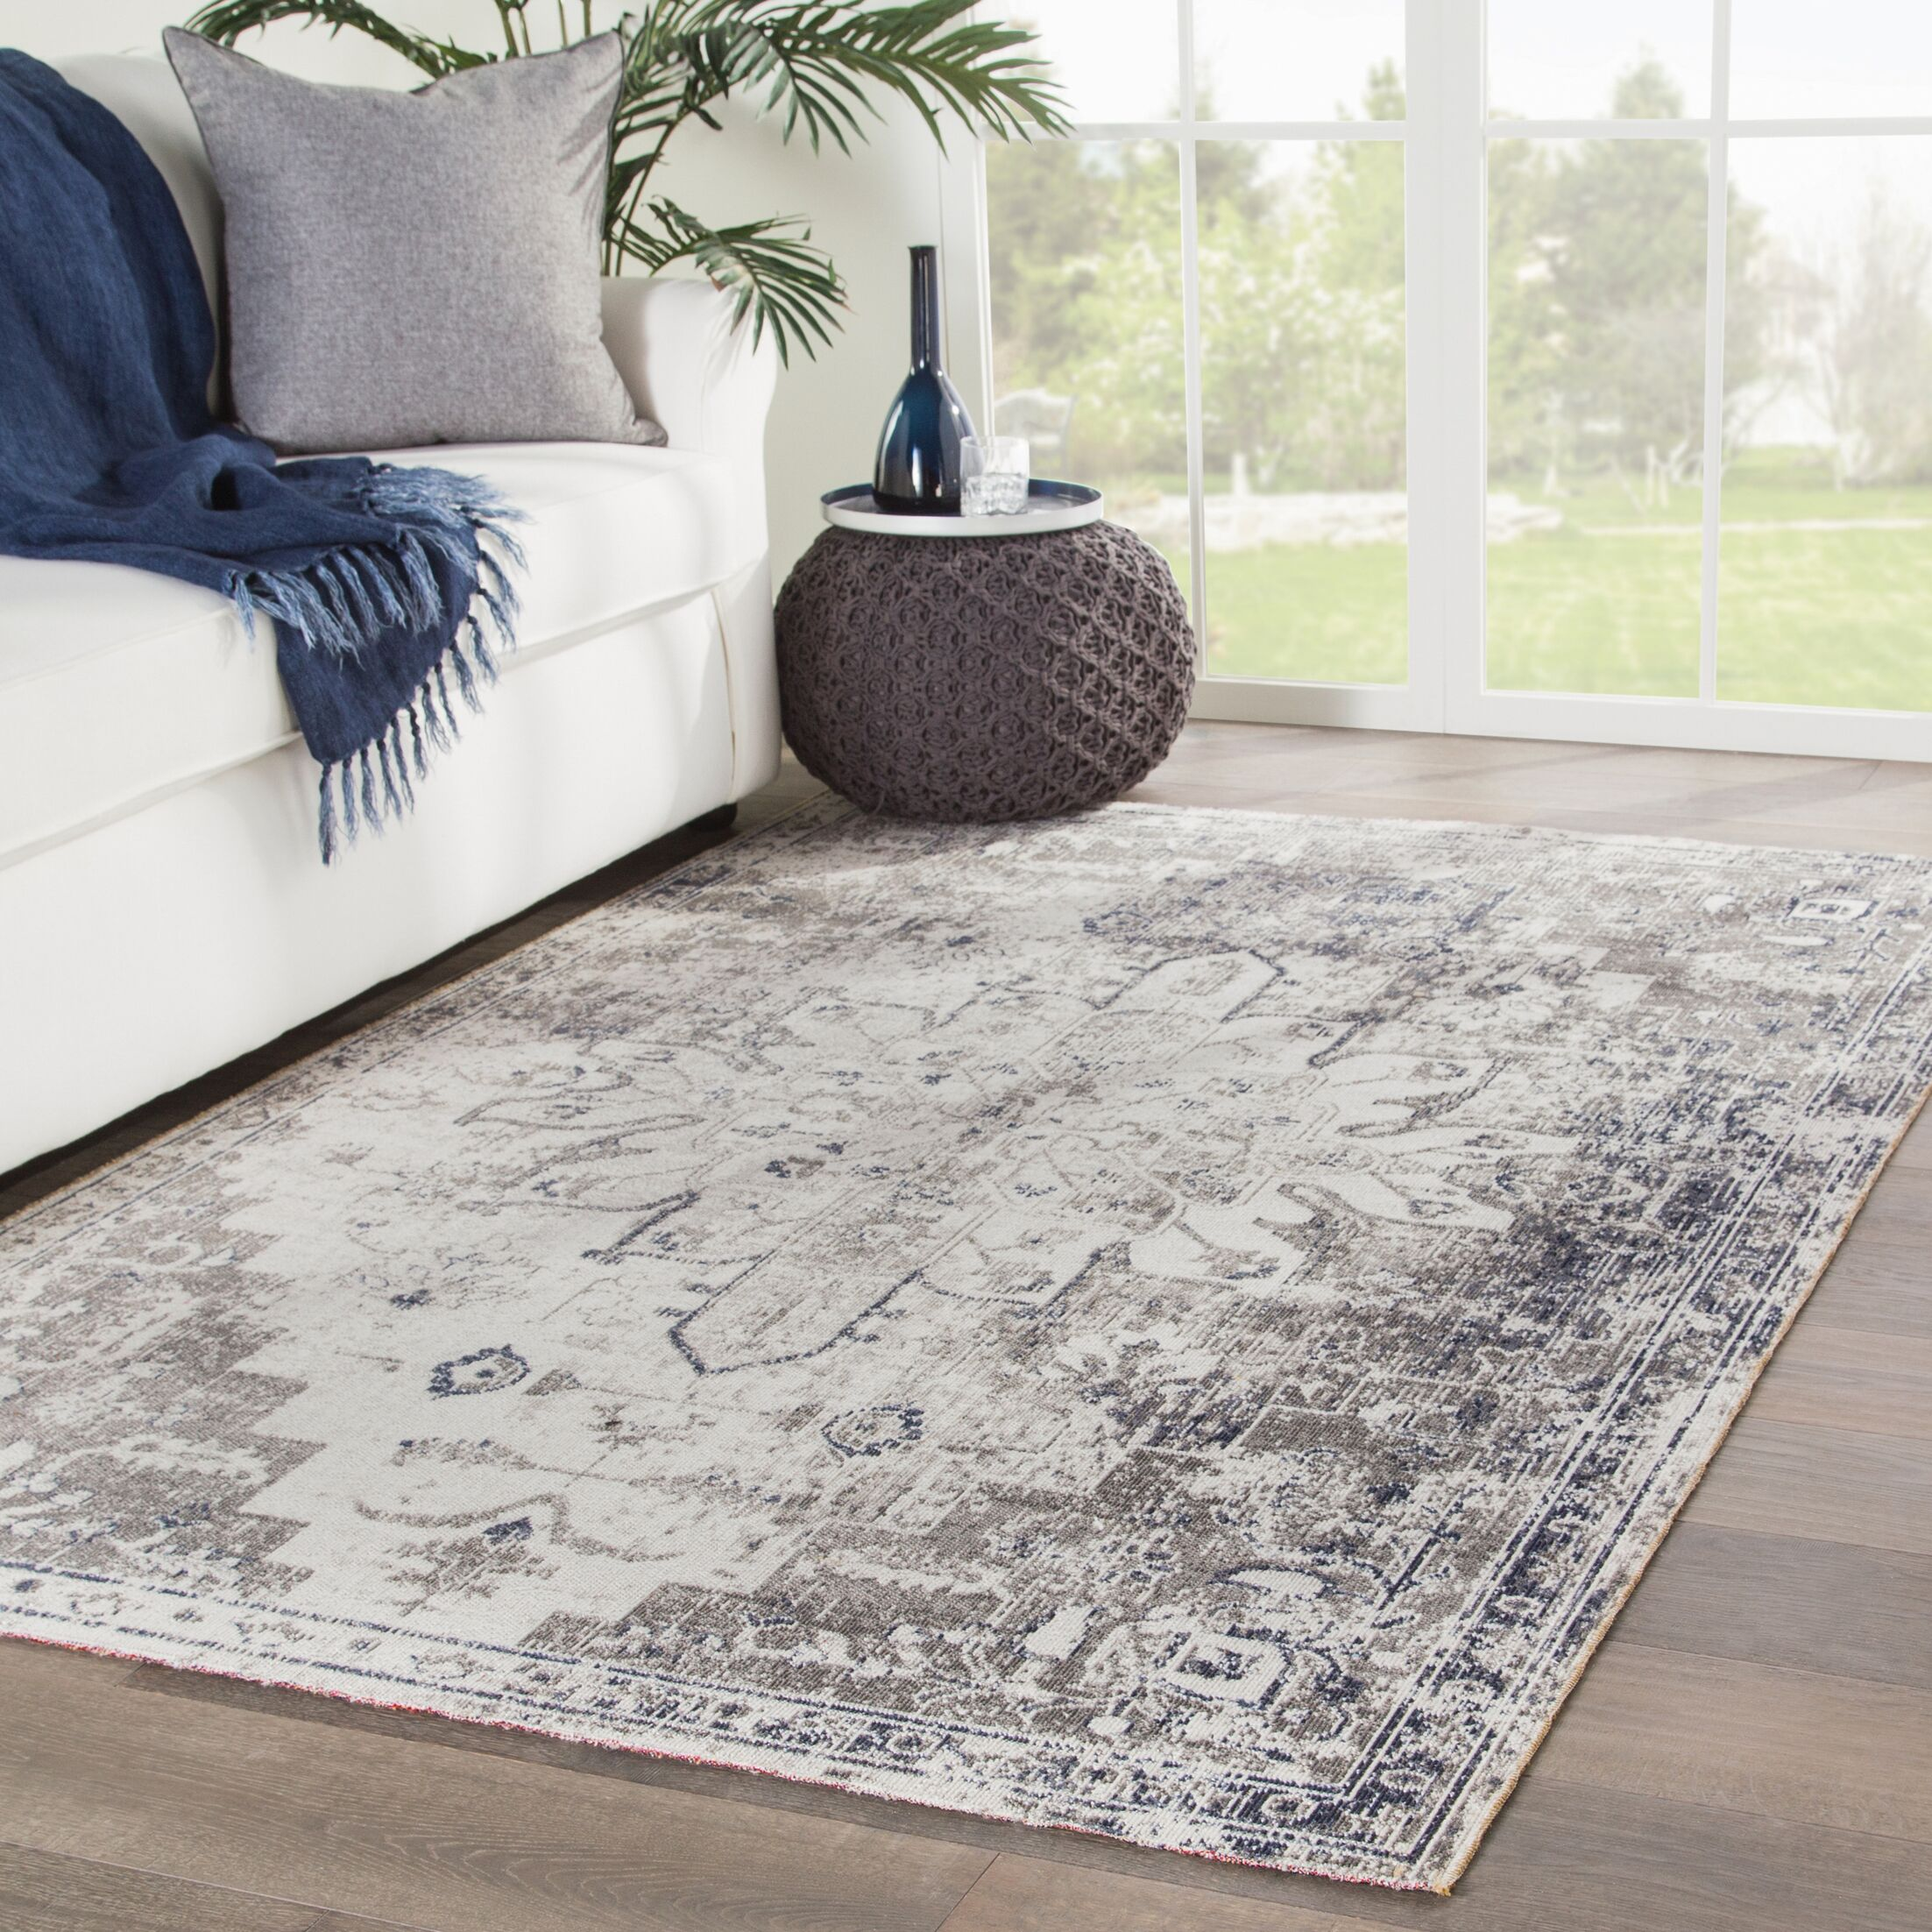 Fauntleroy Gray/Beige Indoor/Outdoor Area Rug Rug Size: Rectangle 7'6